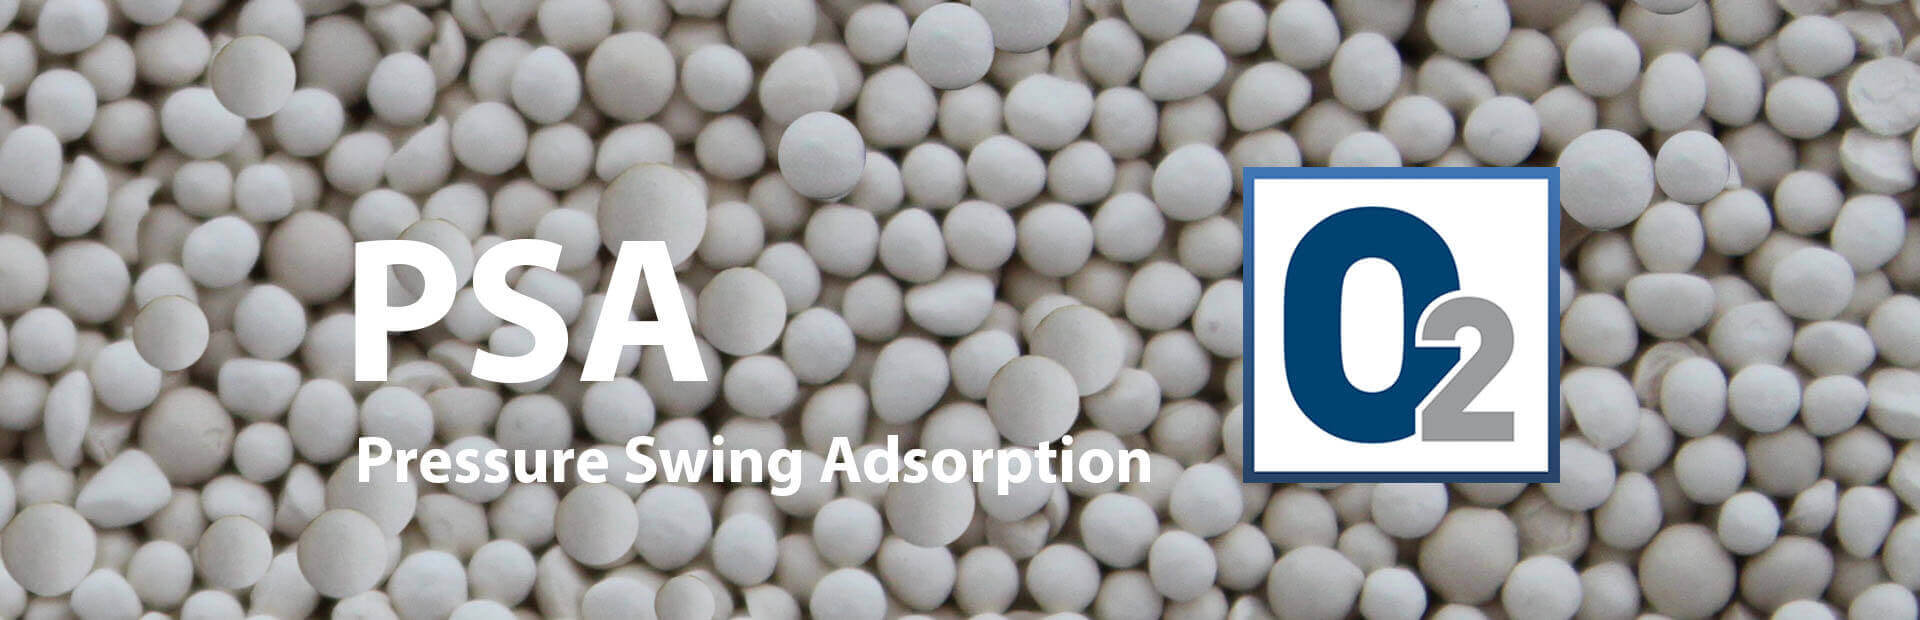 PSA-Technologie Pressure Swing Adsorption